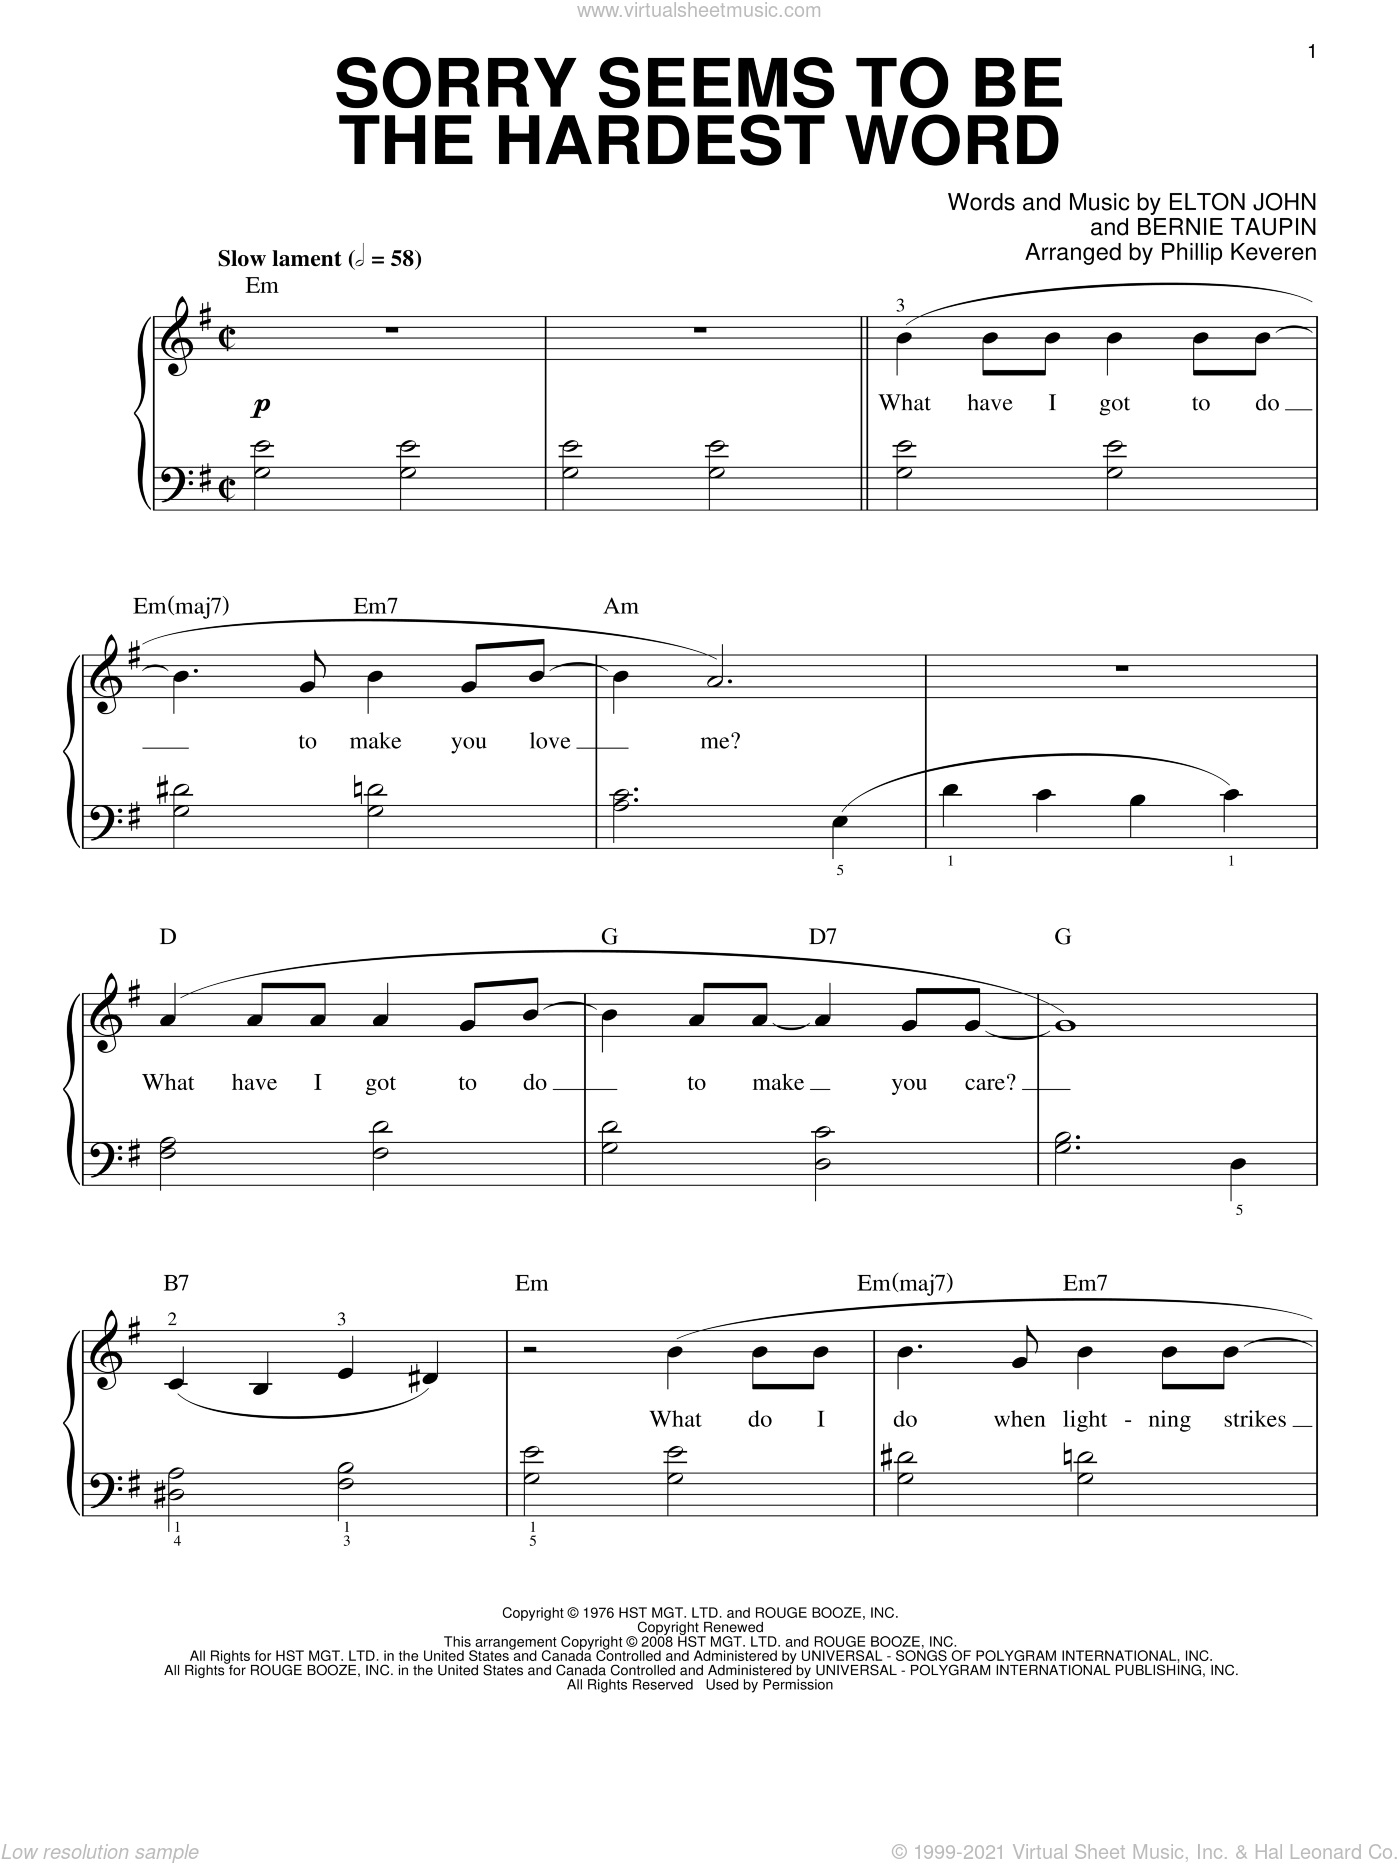 Sorry Seems To Be The Hardest Word sheet music for piano solo by Elton John, Phillip Keveren and Bernie Taupin, intermediate. Score Image Preview.